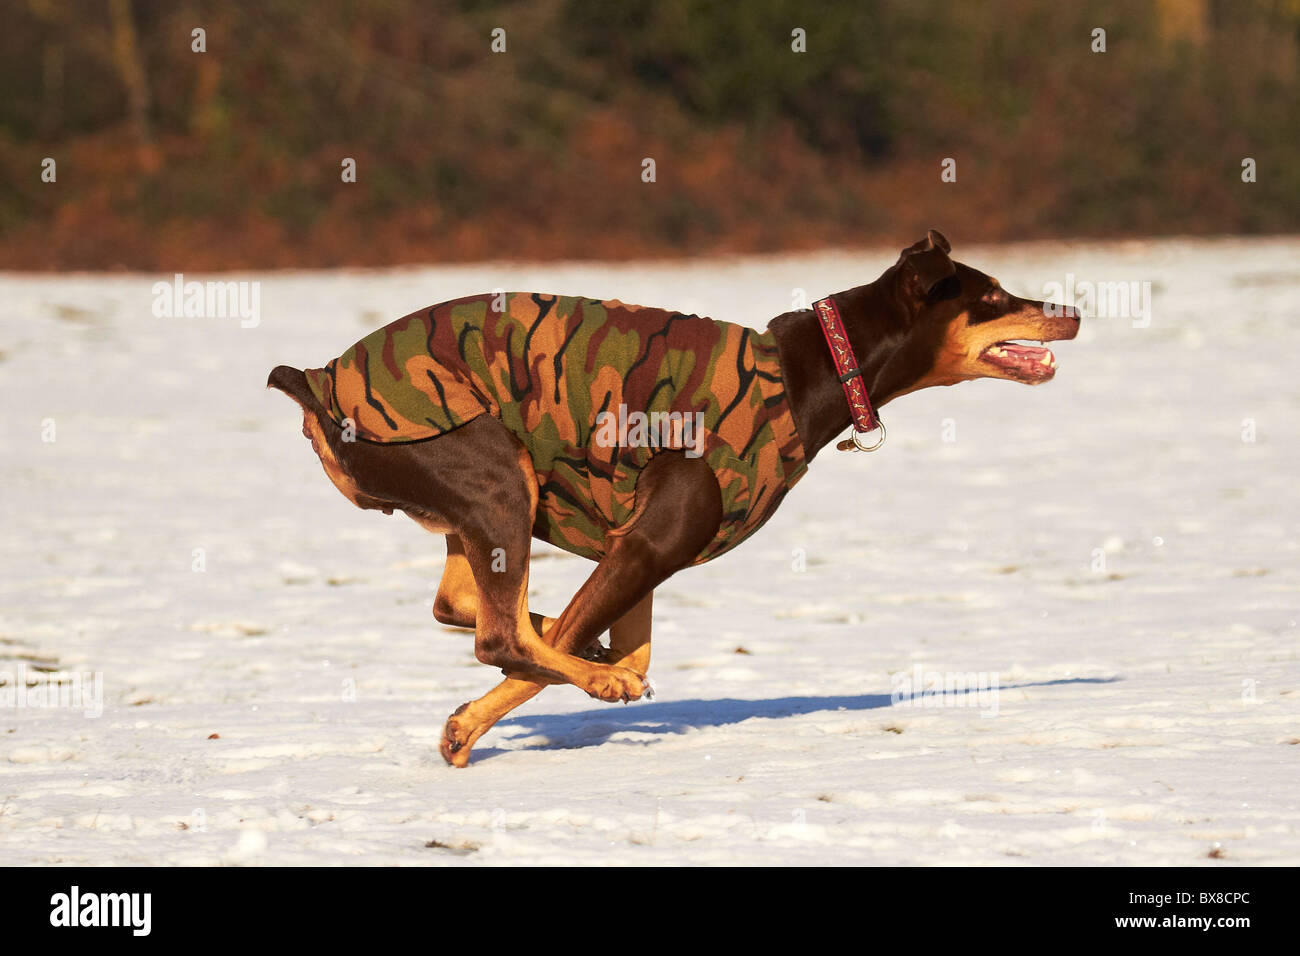 Doberman running side view on snow winter - body warmer - Stock Image